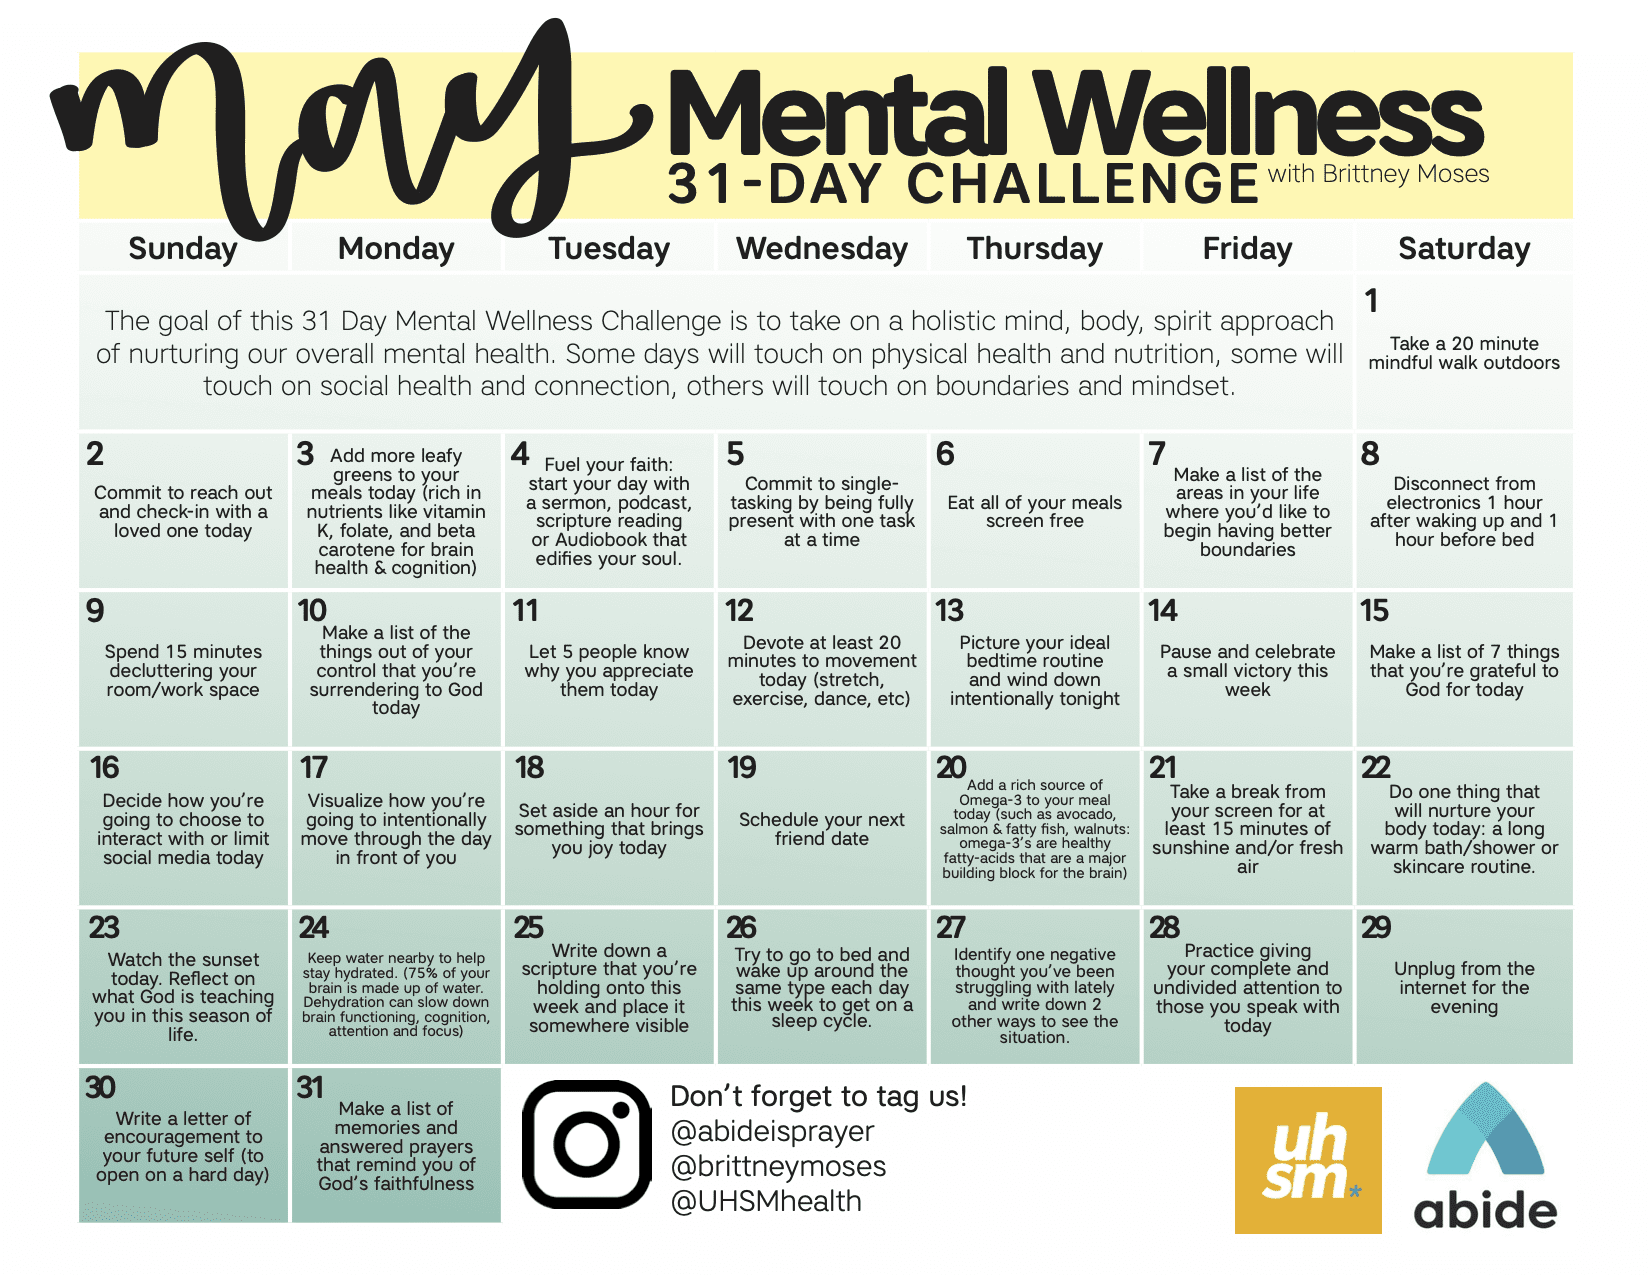 mental-spiritual-wellness-challenge-may-mental-health-month-alive-counselling-christian-counsellor-barb-egan-kelowna-british-columbia-therapy